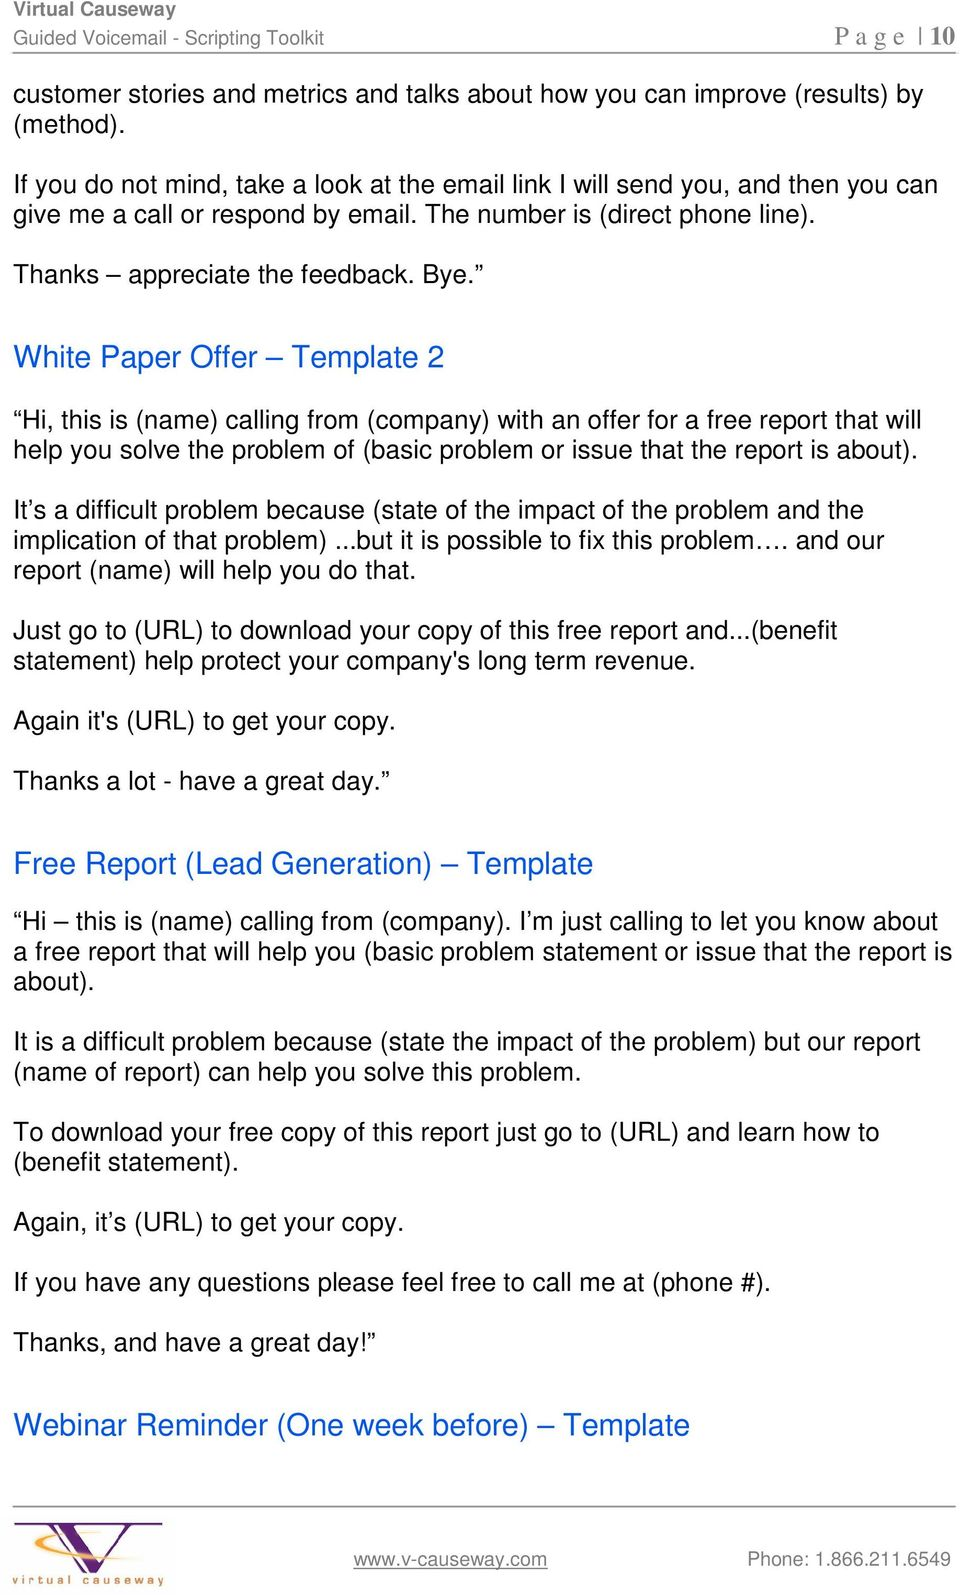 White Paper Offer Template 2 Hi, this is (name) calling from (company) with an offer for a free report that will help you solve the problem of (basic problem or issue that the report is about).